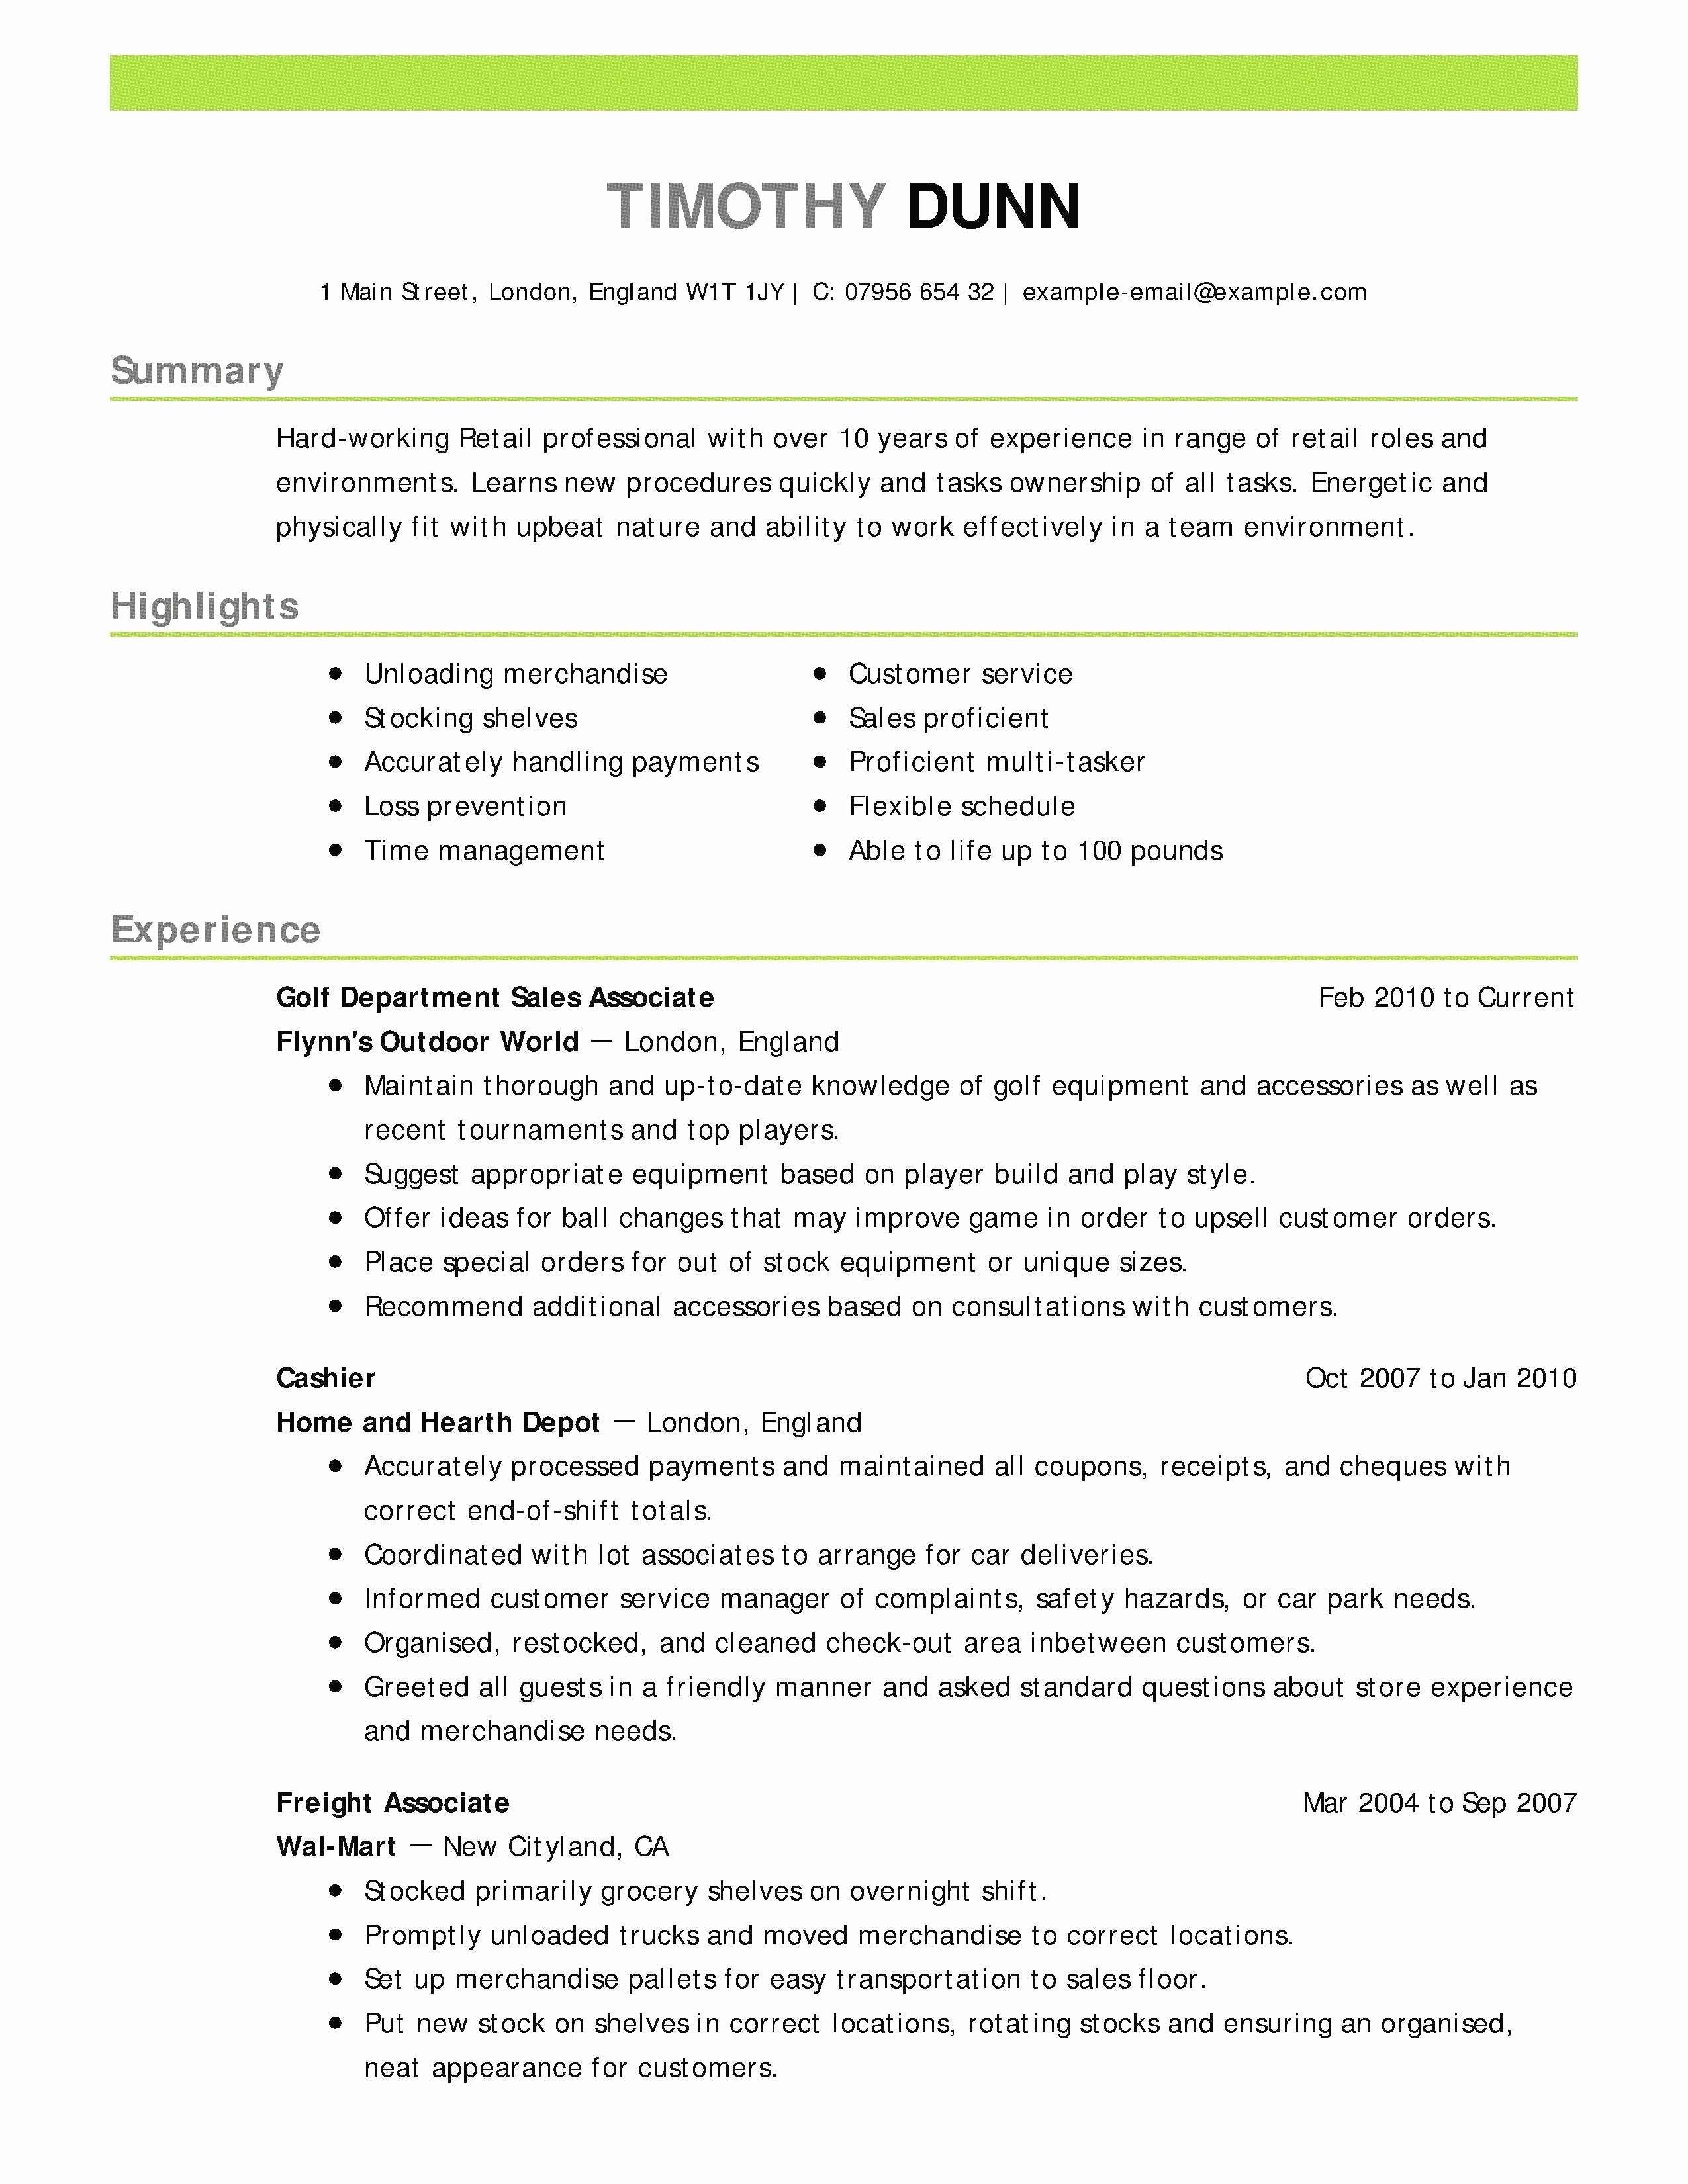 Cover Letter Exampls Free Download Simple Cover Letter